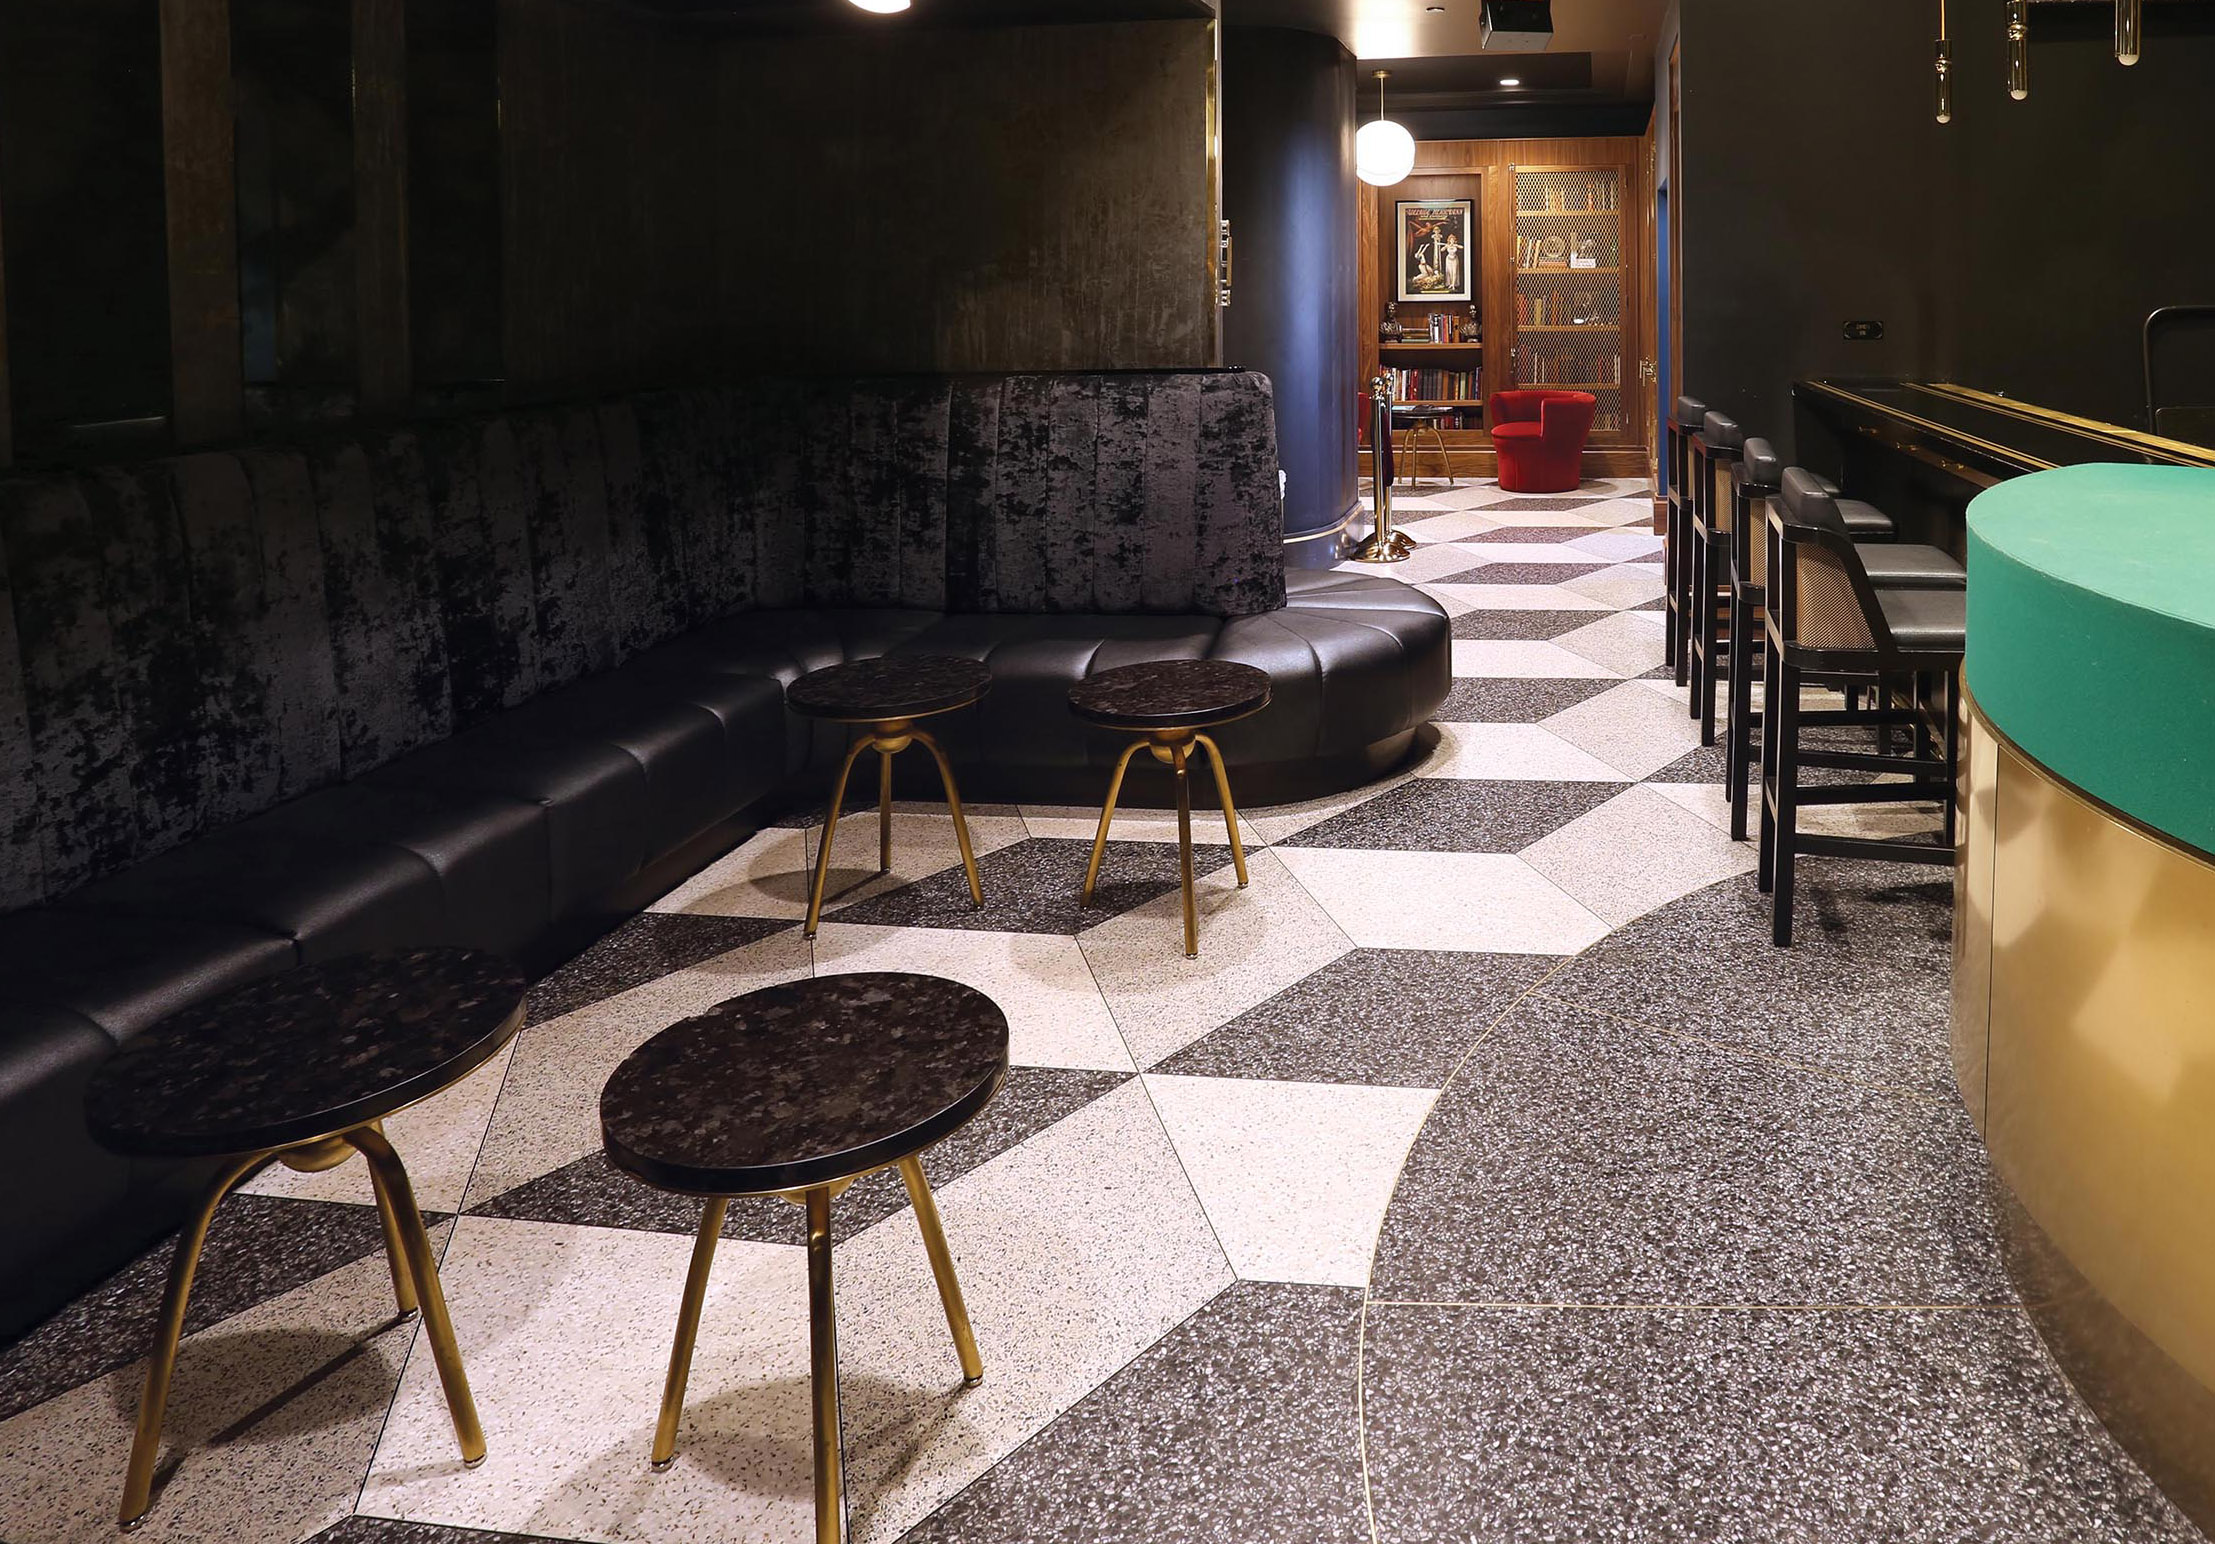 Chicago magic lounge terrazzo flooring 3D menconi